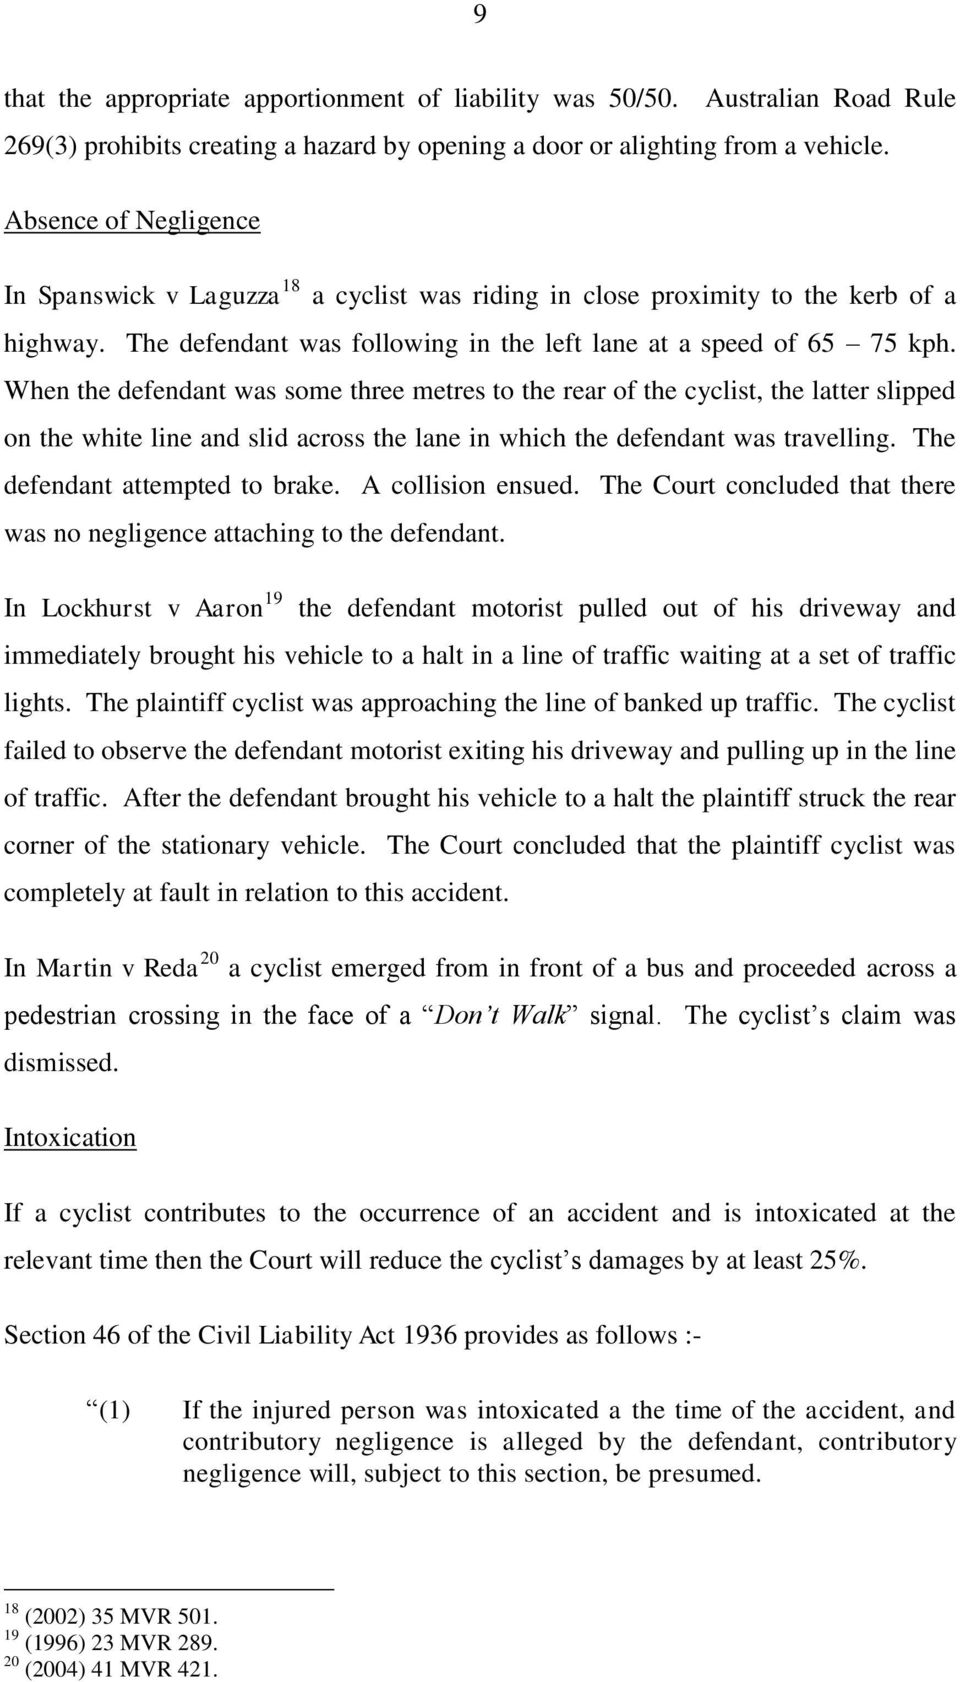 When the defendant was some three metres to the rear of the cyclist, the latter slipped on the white line and slid across the lane in which the defendant was travelling.